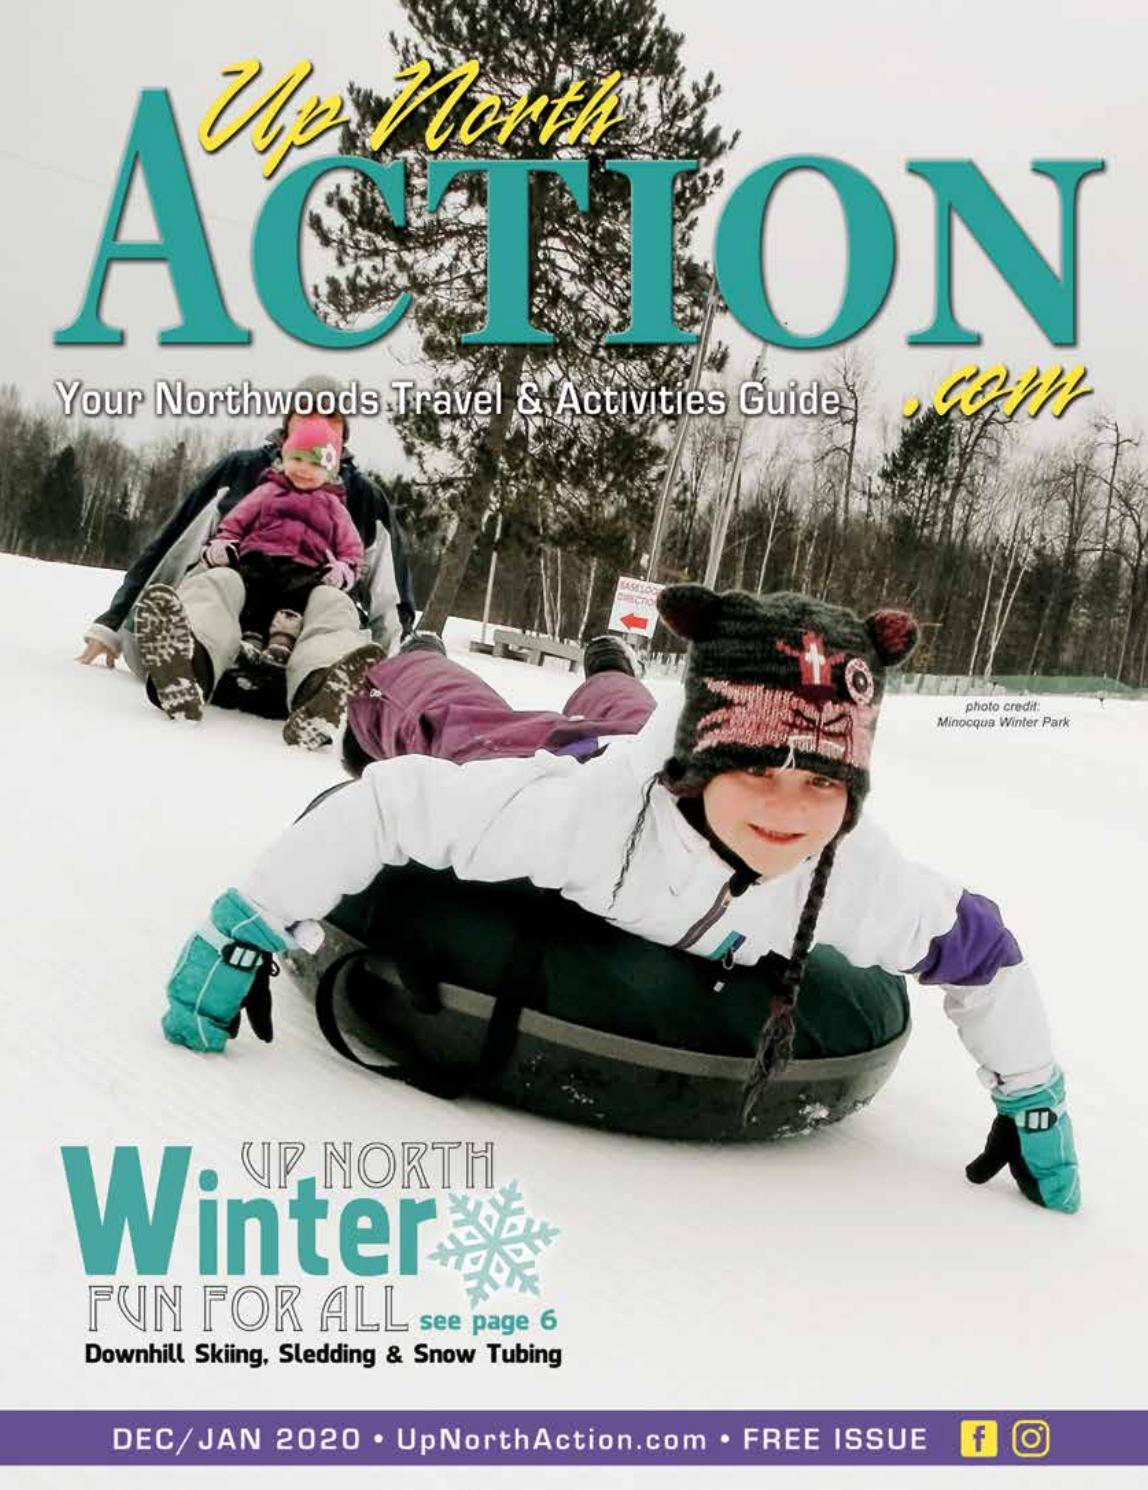 Up North Action Dec/Jan 2020 by 5 Star Marketing & Distribution